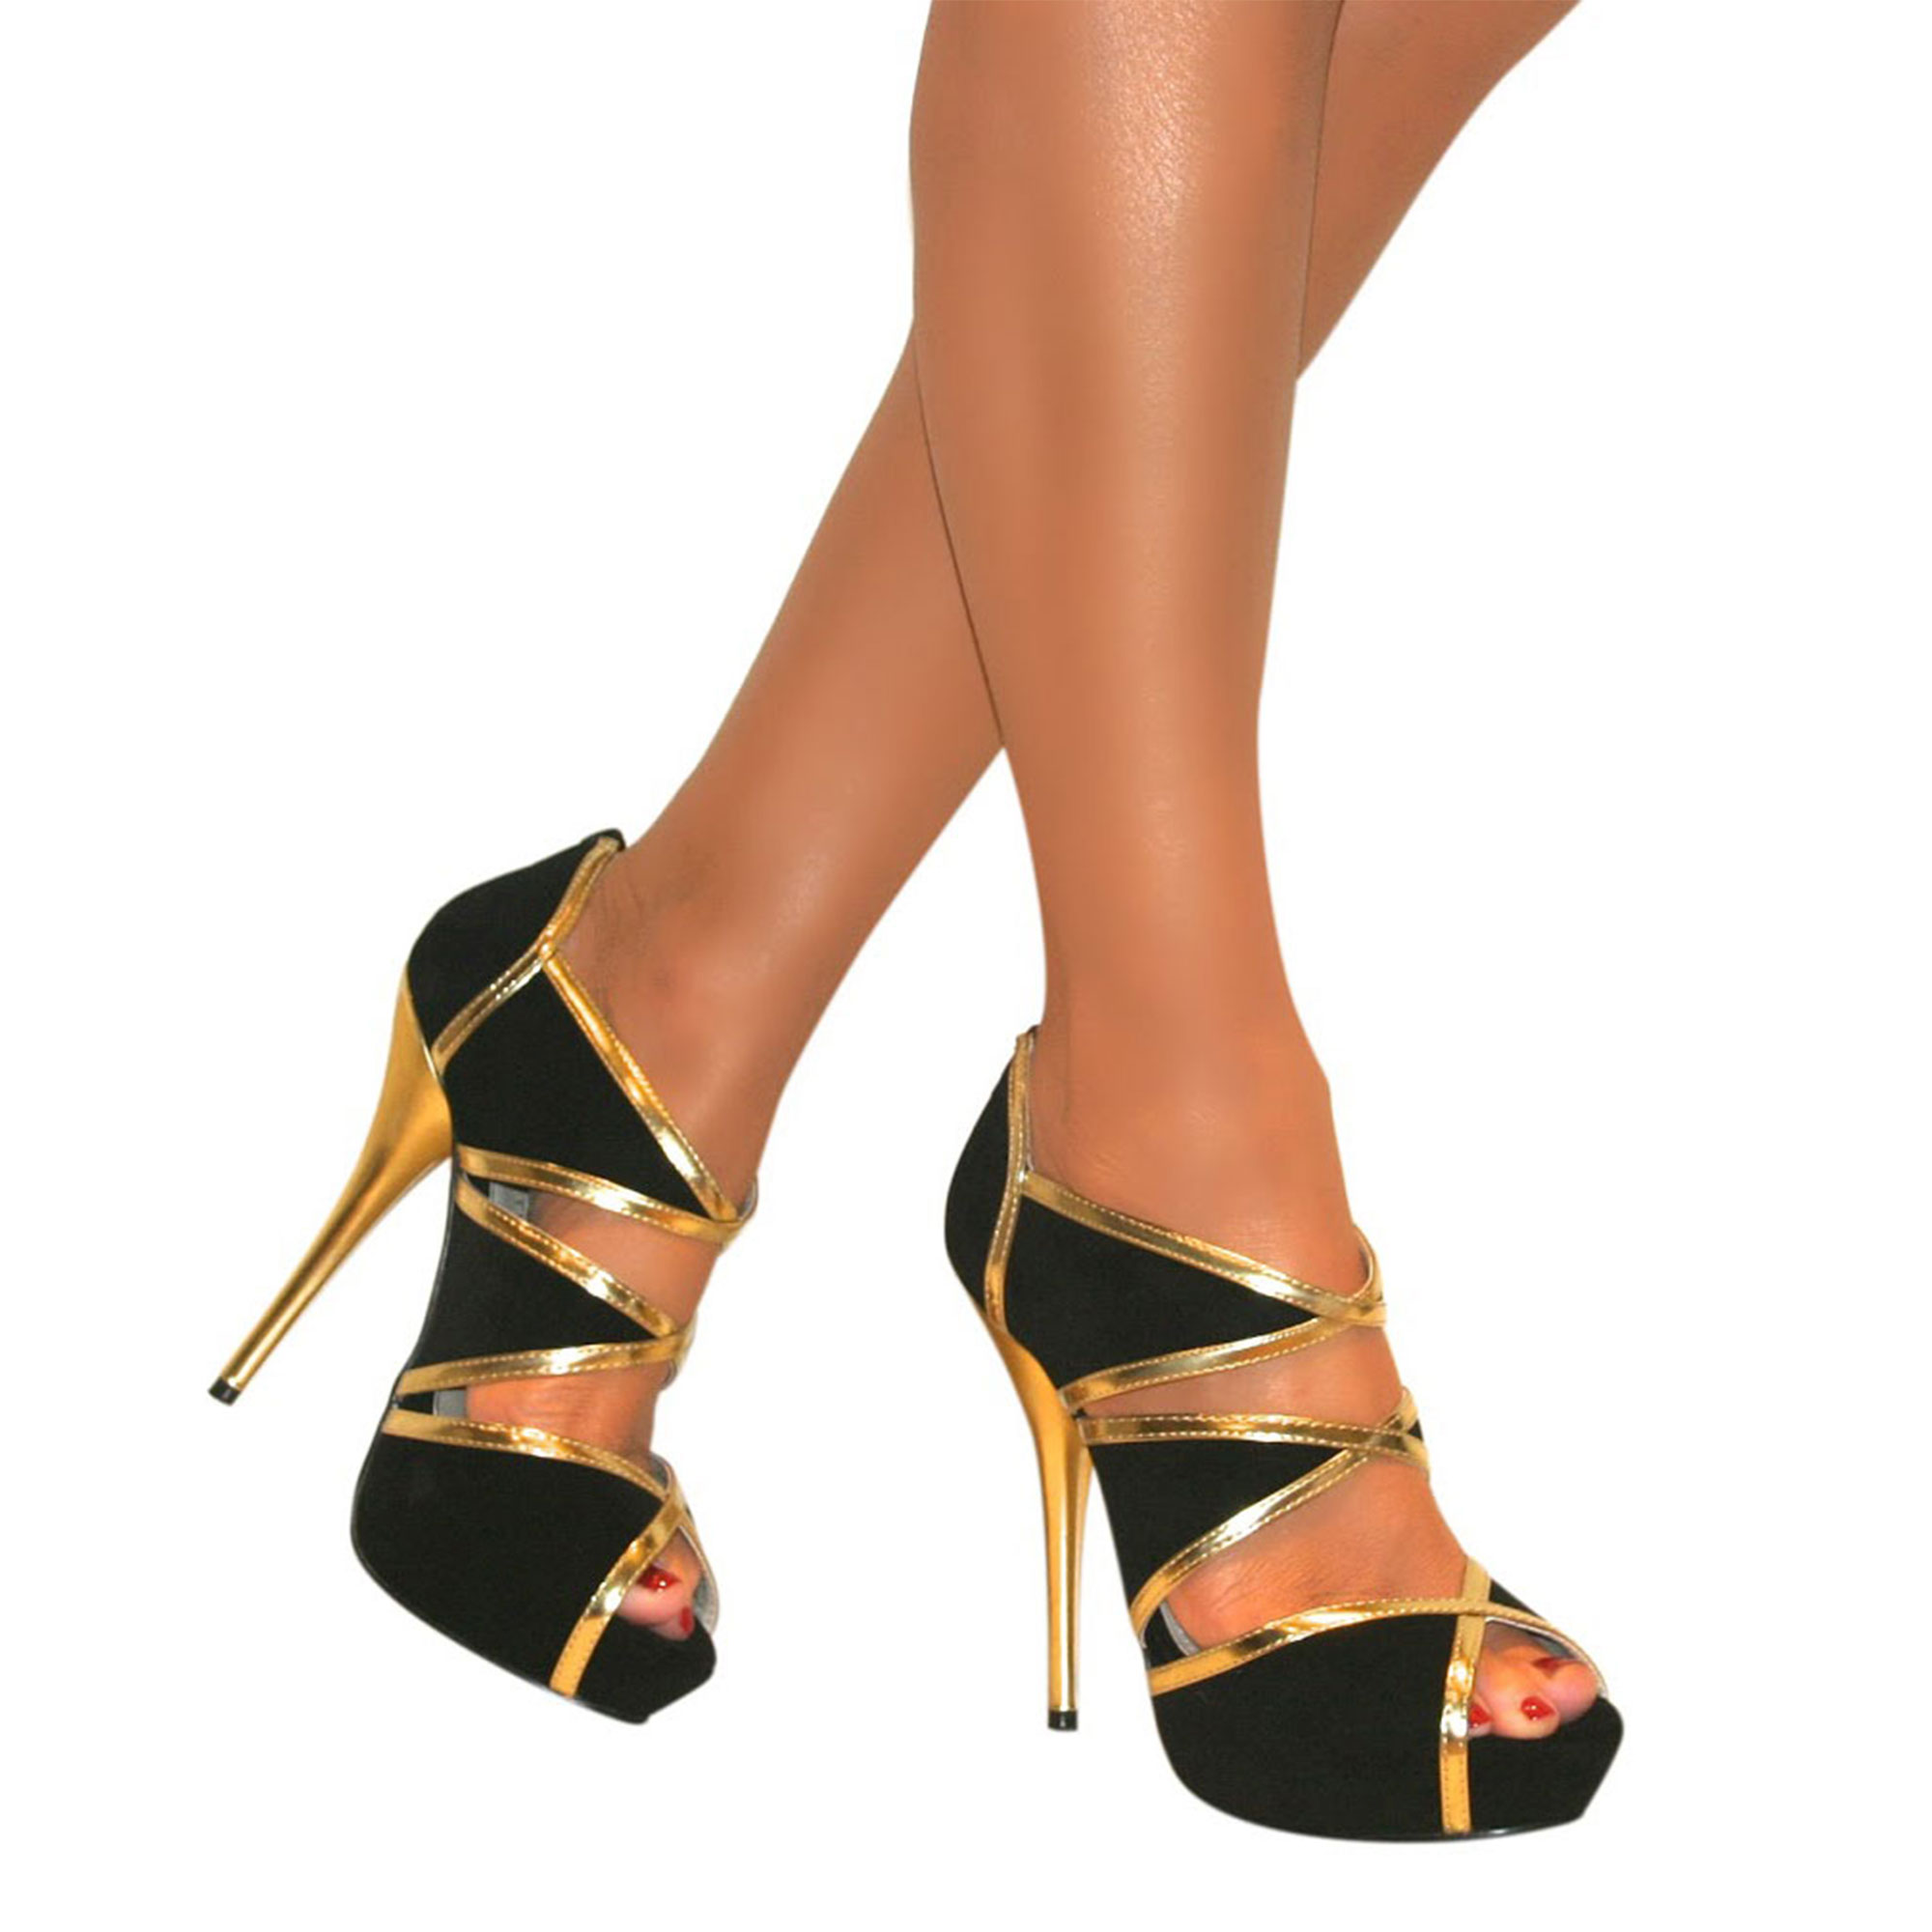 WOMENS BLACK GOLD CUT OUT HIGH STILETTO HEEL PEEP TOE SANDALS